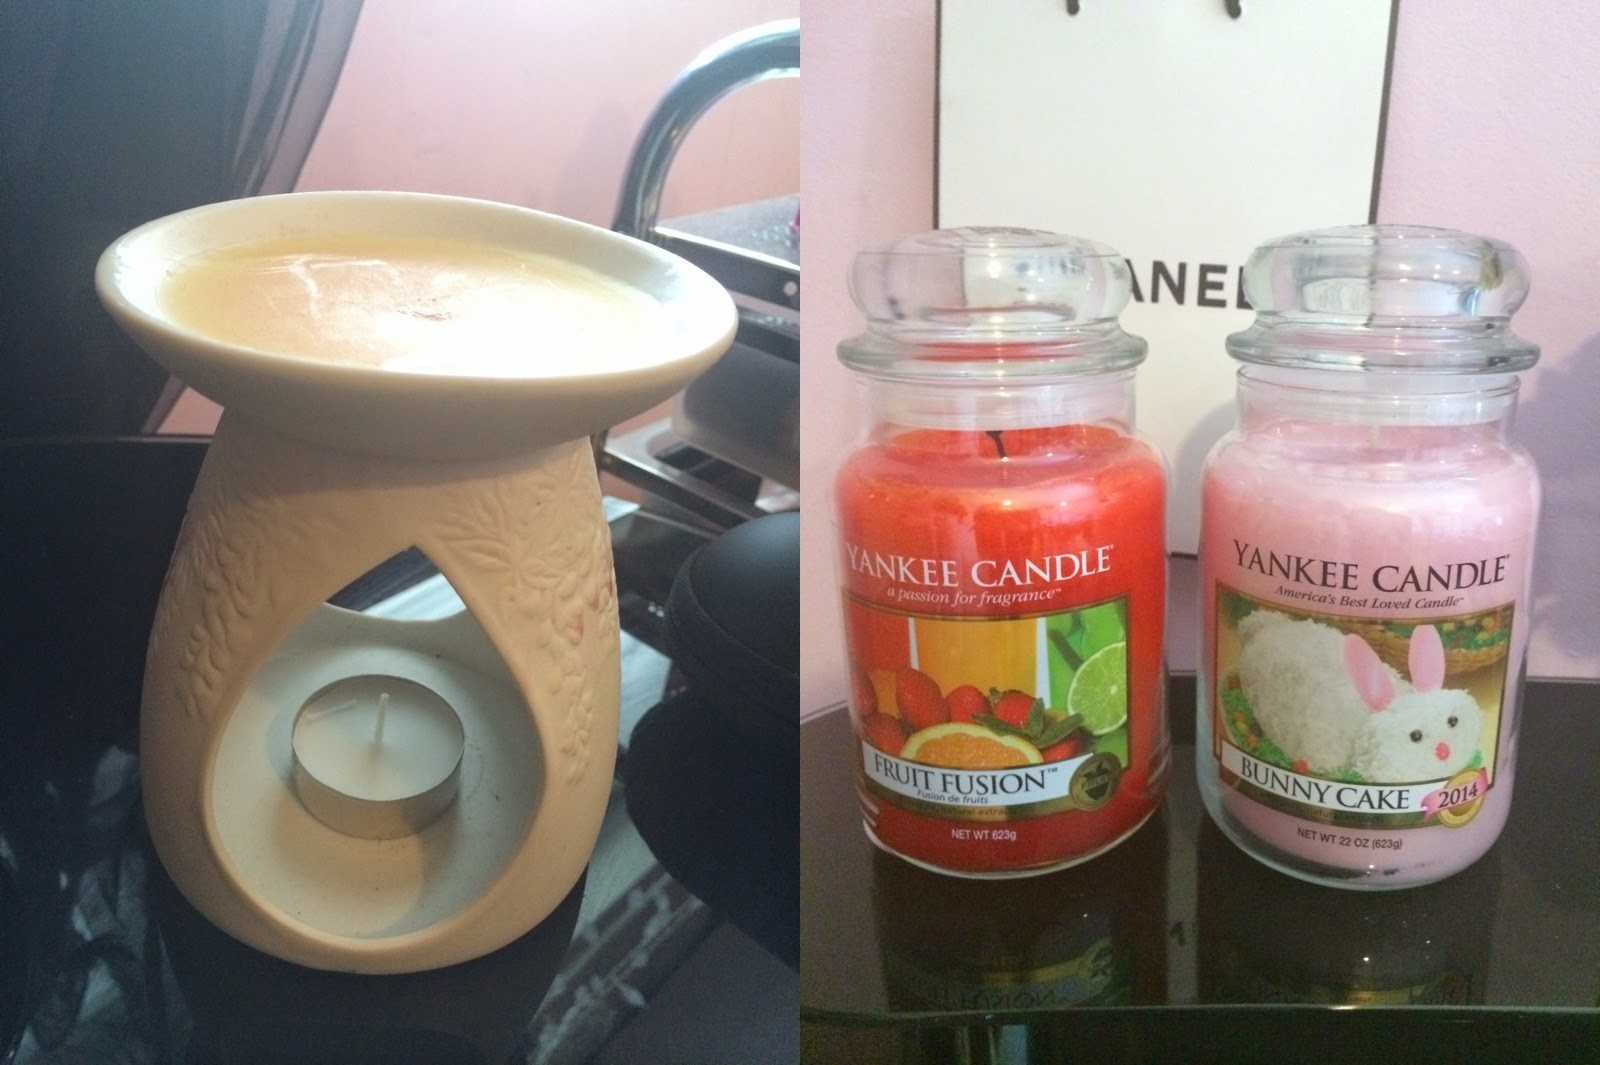 Yankee Candle// Tarts & Collection | Another Beauty Babble